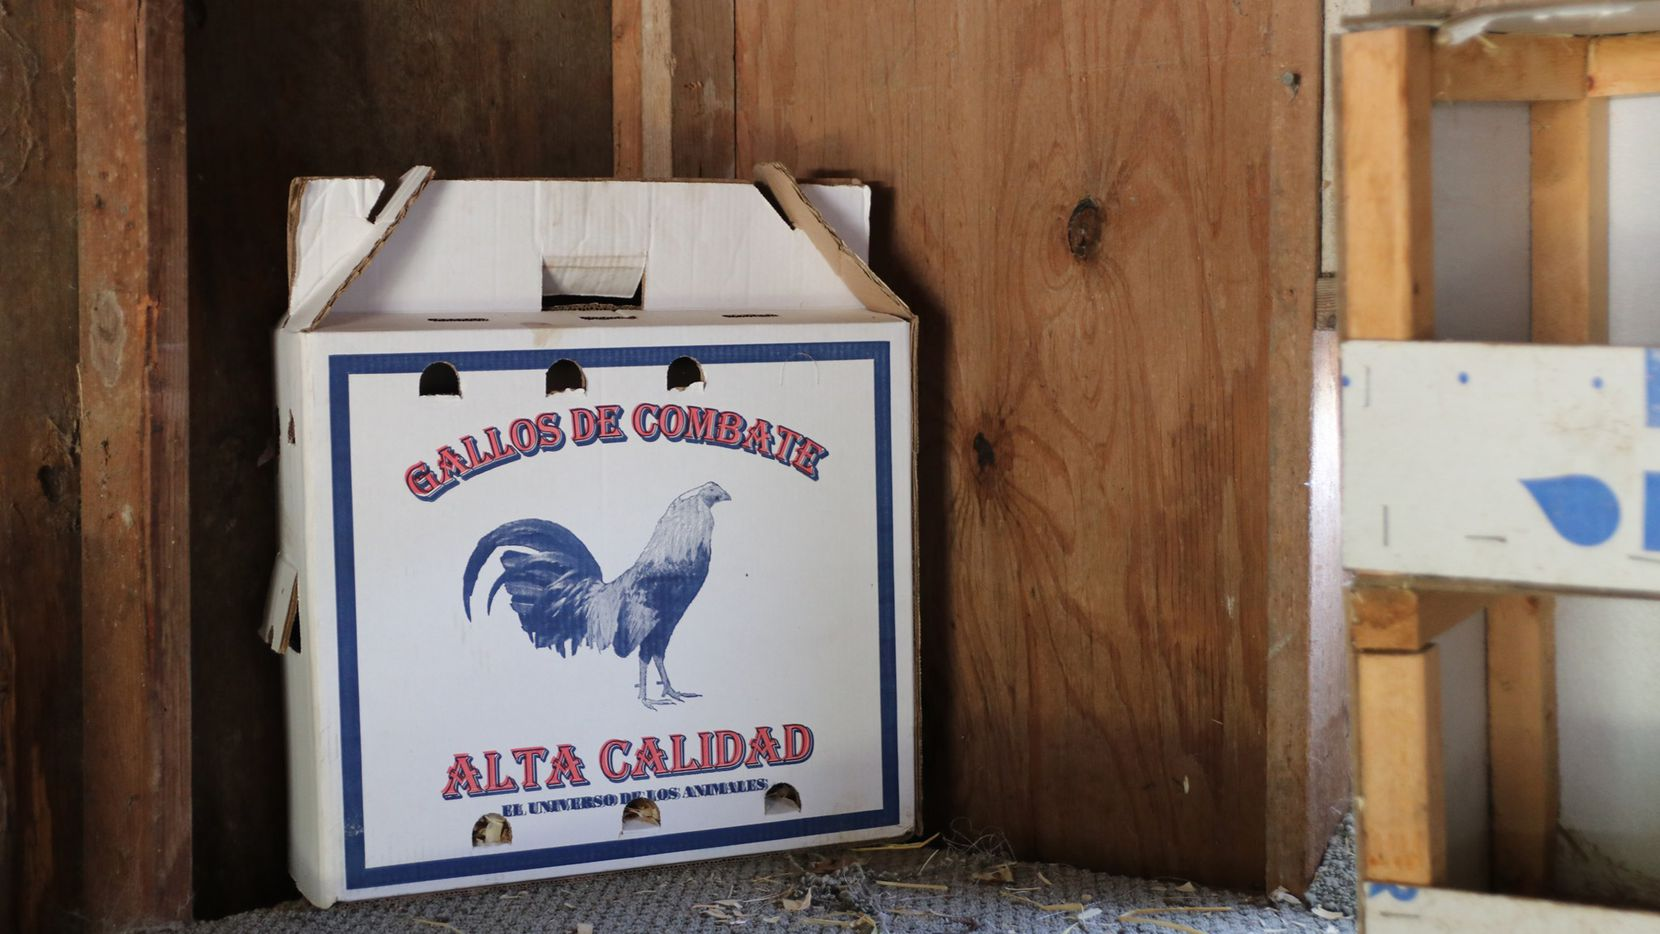 A box to transport cockfighting birds was found on the property where 176 animals were seized on suspicion of animal cruelty.